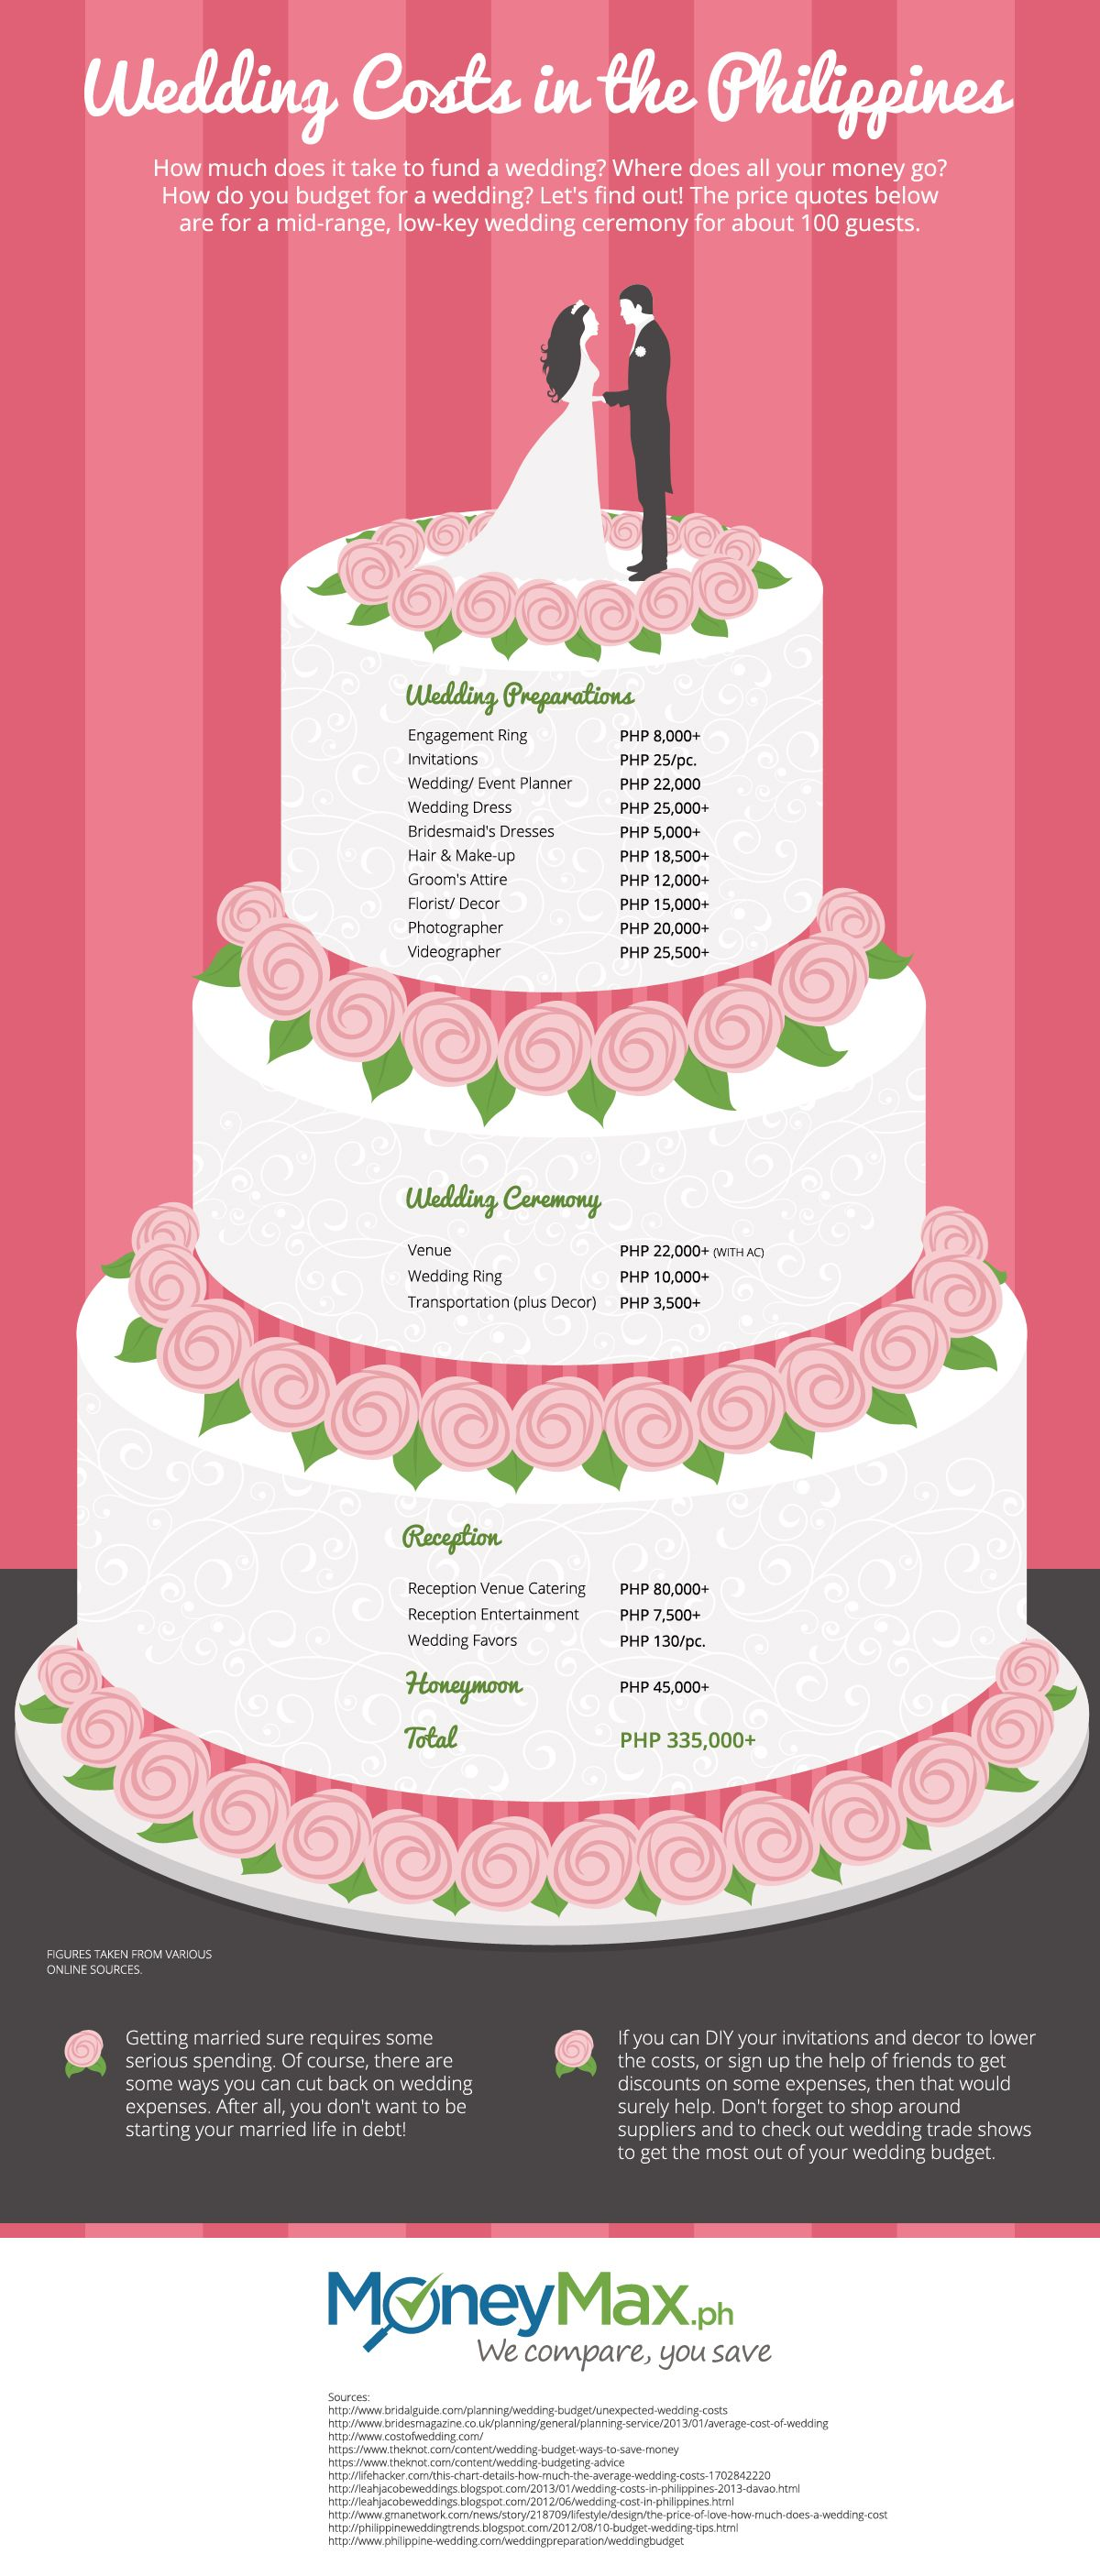 How Much Does A Wedding Cost In The Philippines Weddings In The Philippines Wedding Expenses Wedding Costs Wedding Preparation